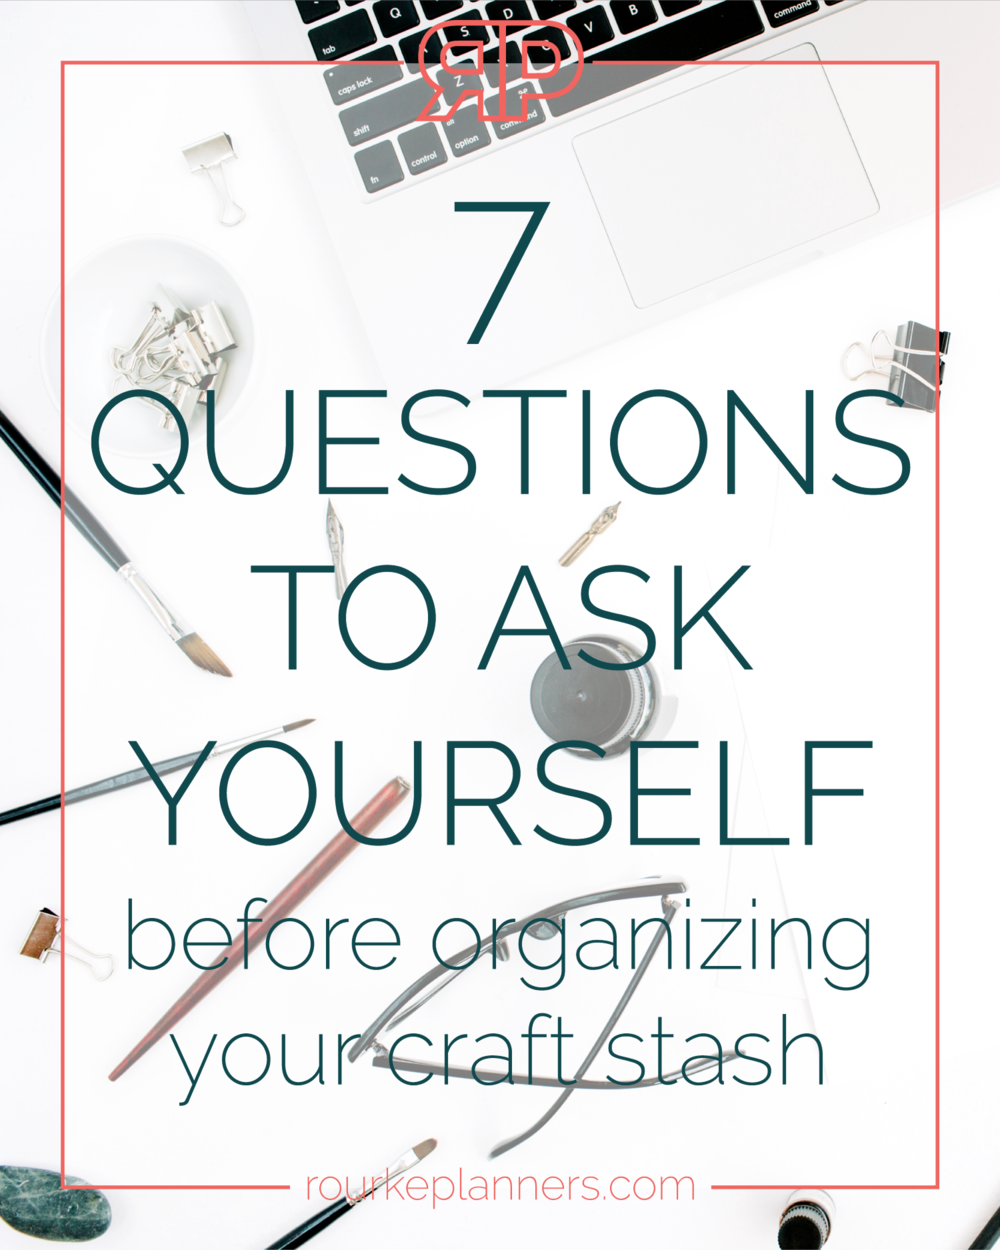 7 Questions to Ask Yourself Before Organizing Your Craft Stash | Rourke Planners